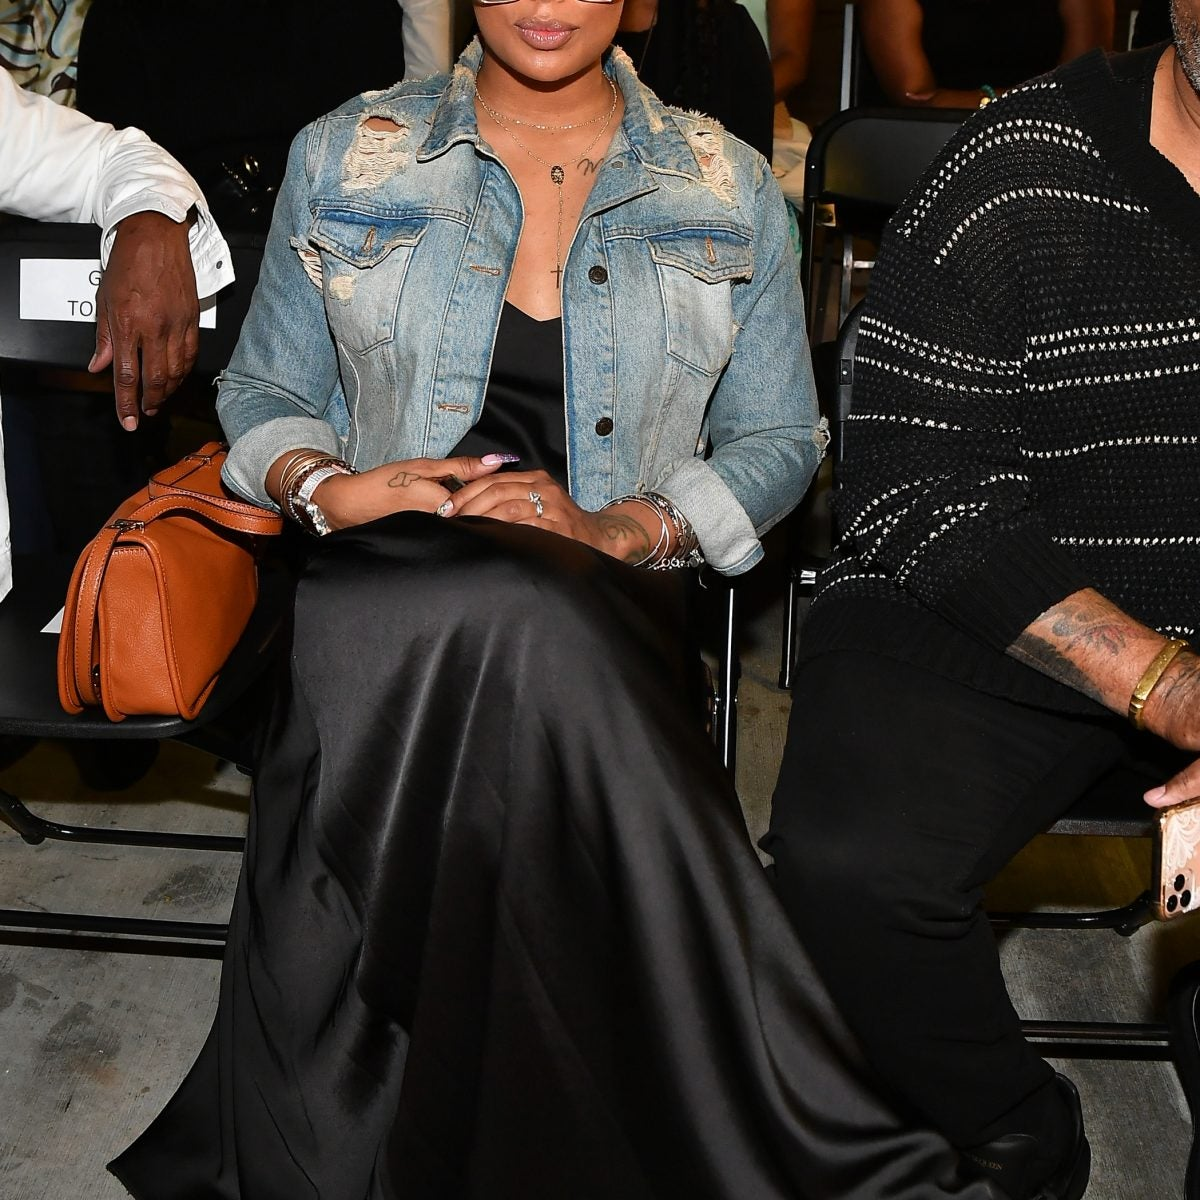 Eva Marcille, Doja Cat And Other Celebs Out And About